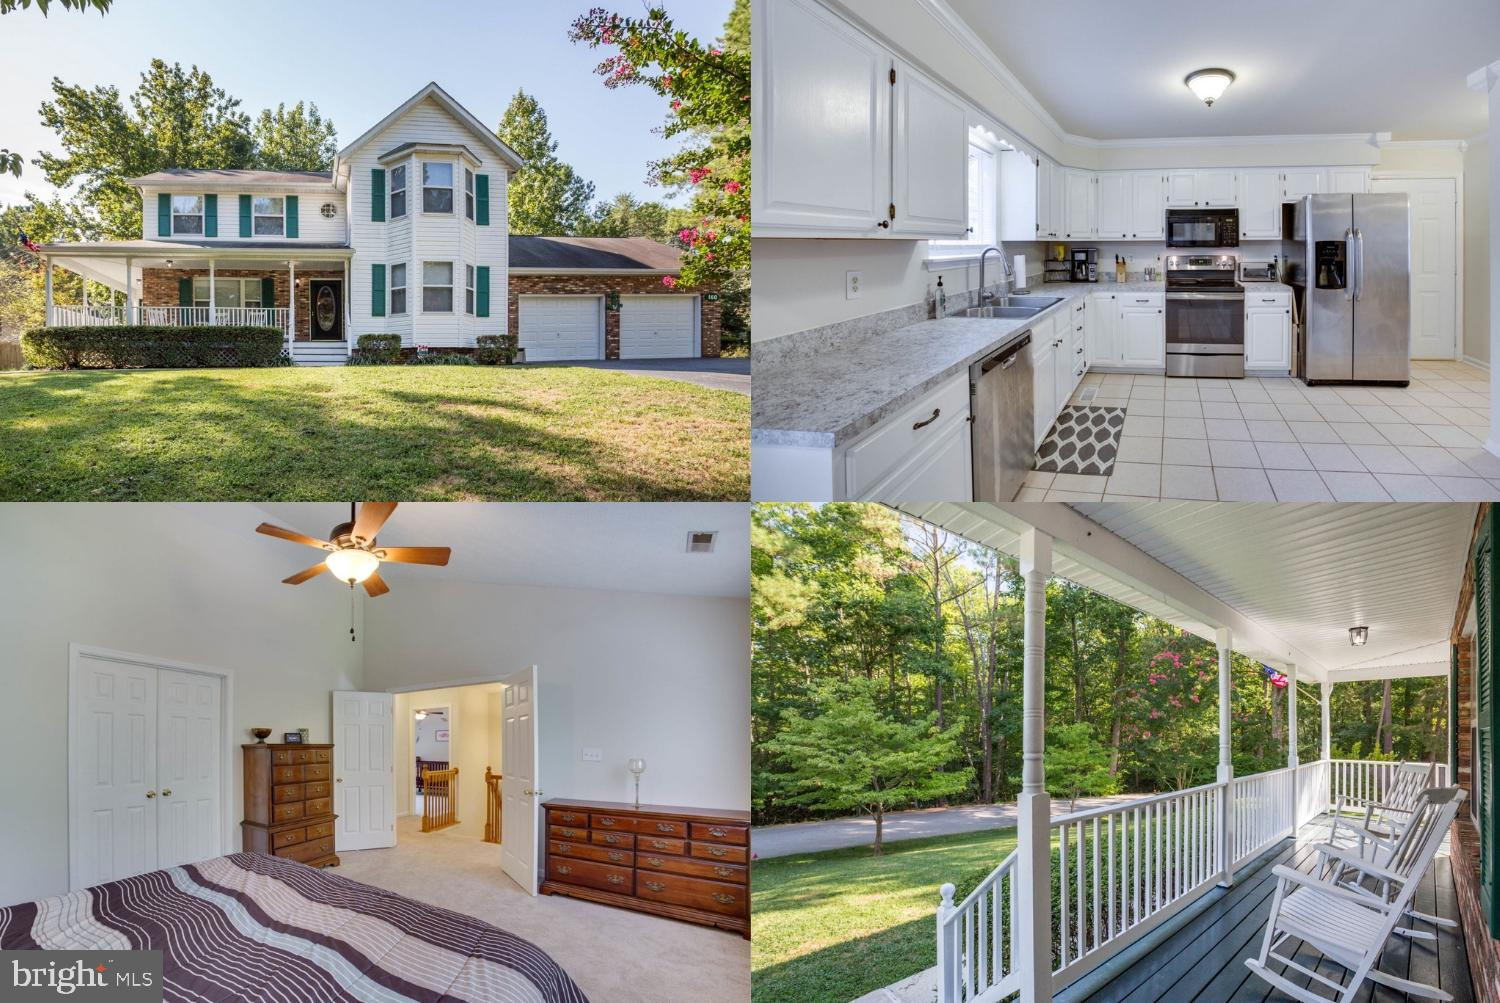 Impeccable Colonial Home in the Soundings Neighborhood. This home boasts beautiful Hardwood Floors,